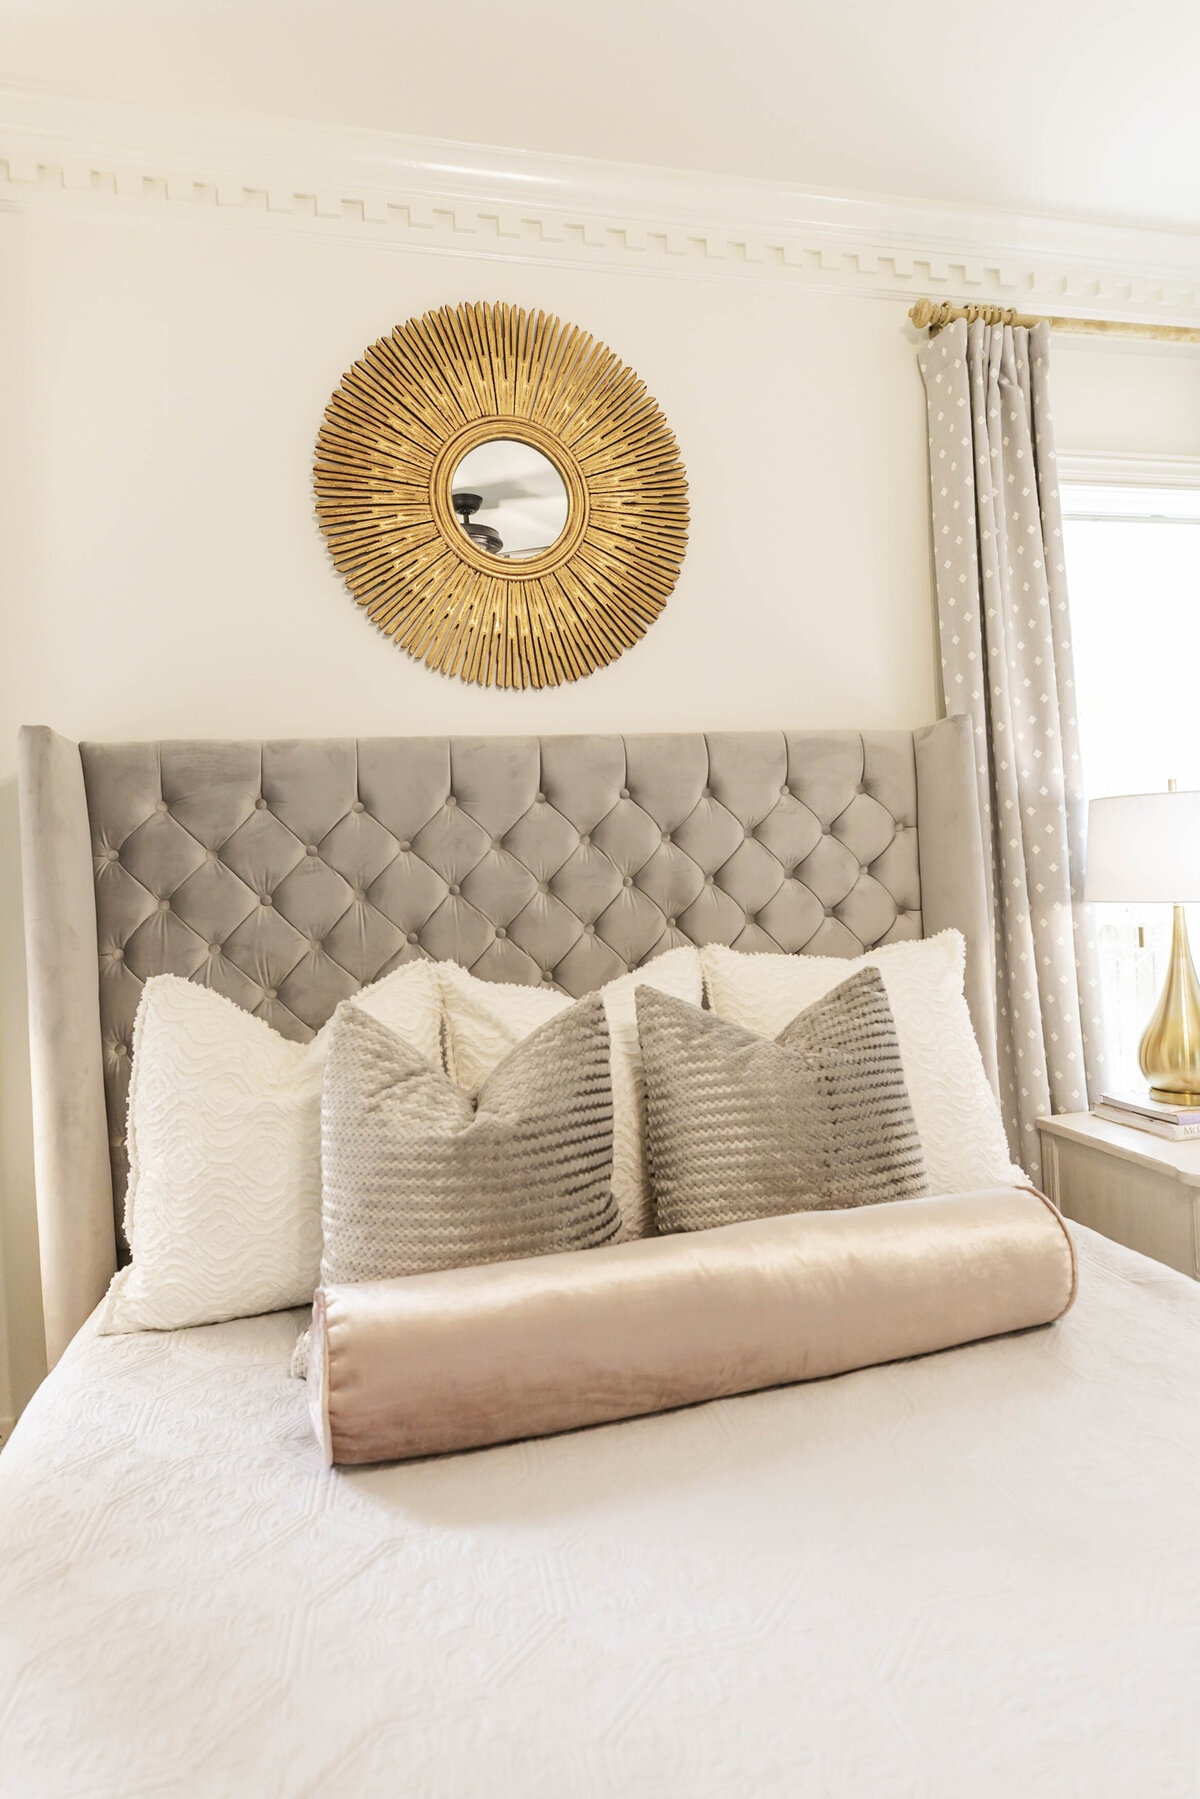 moda-designs-mississippi-interior-designer-bedroom-inspiration-gold-accents27